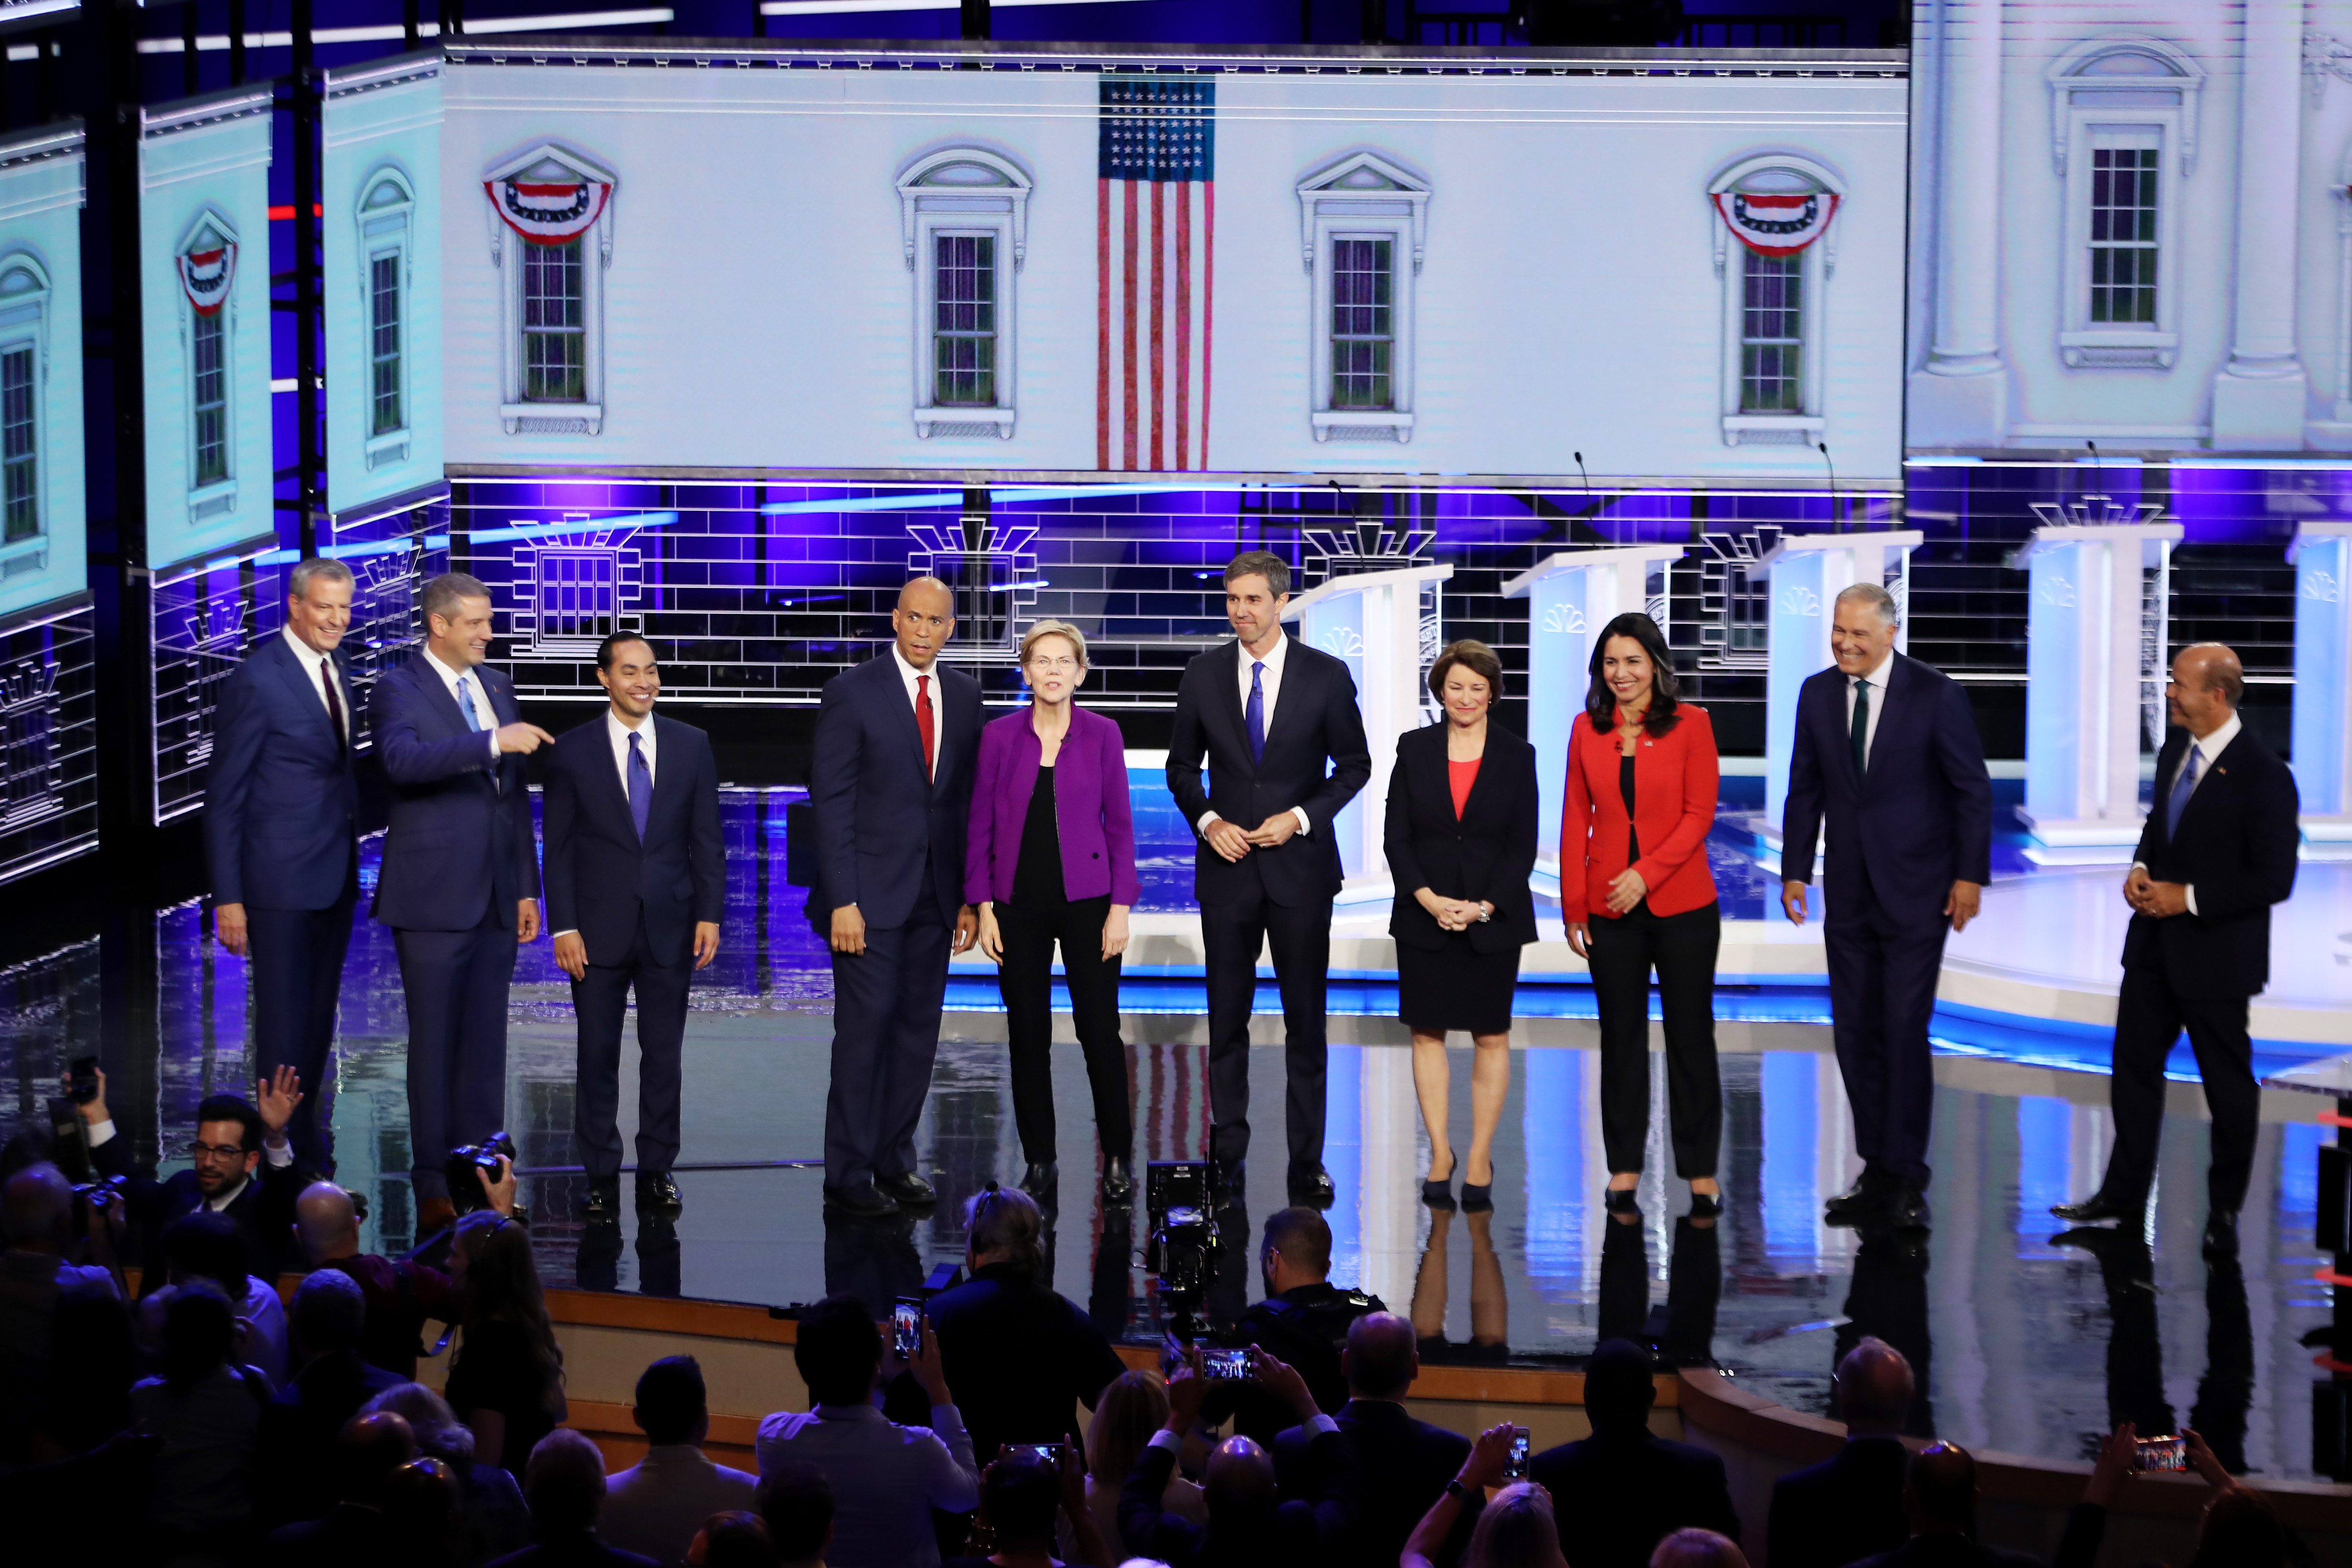 The 2019 Democratic debate shows how striking it is to have more representation onstage